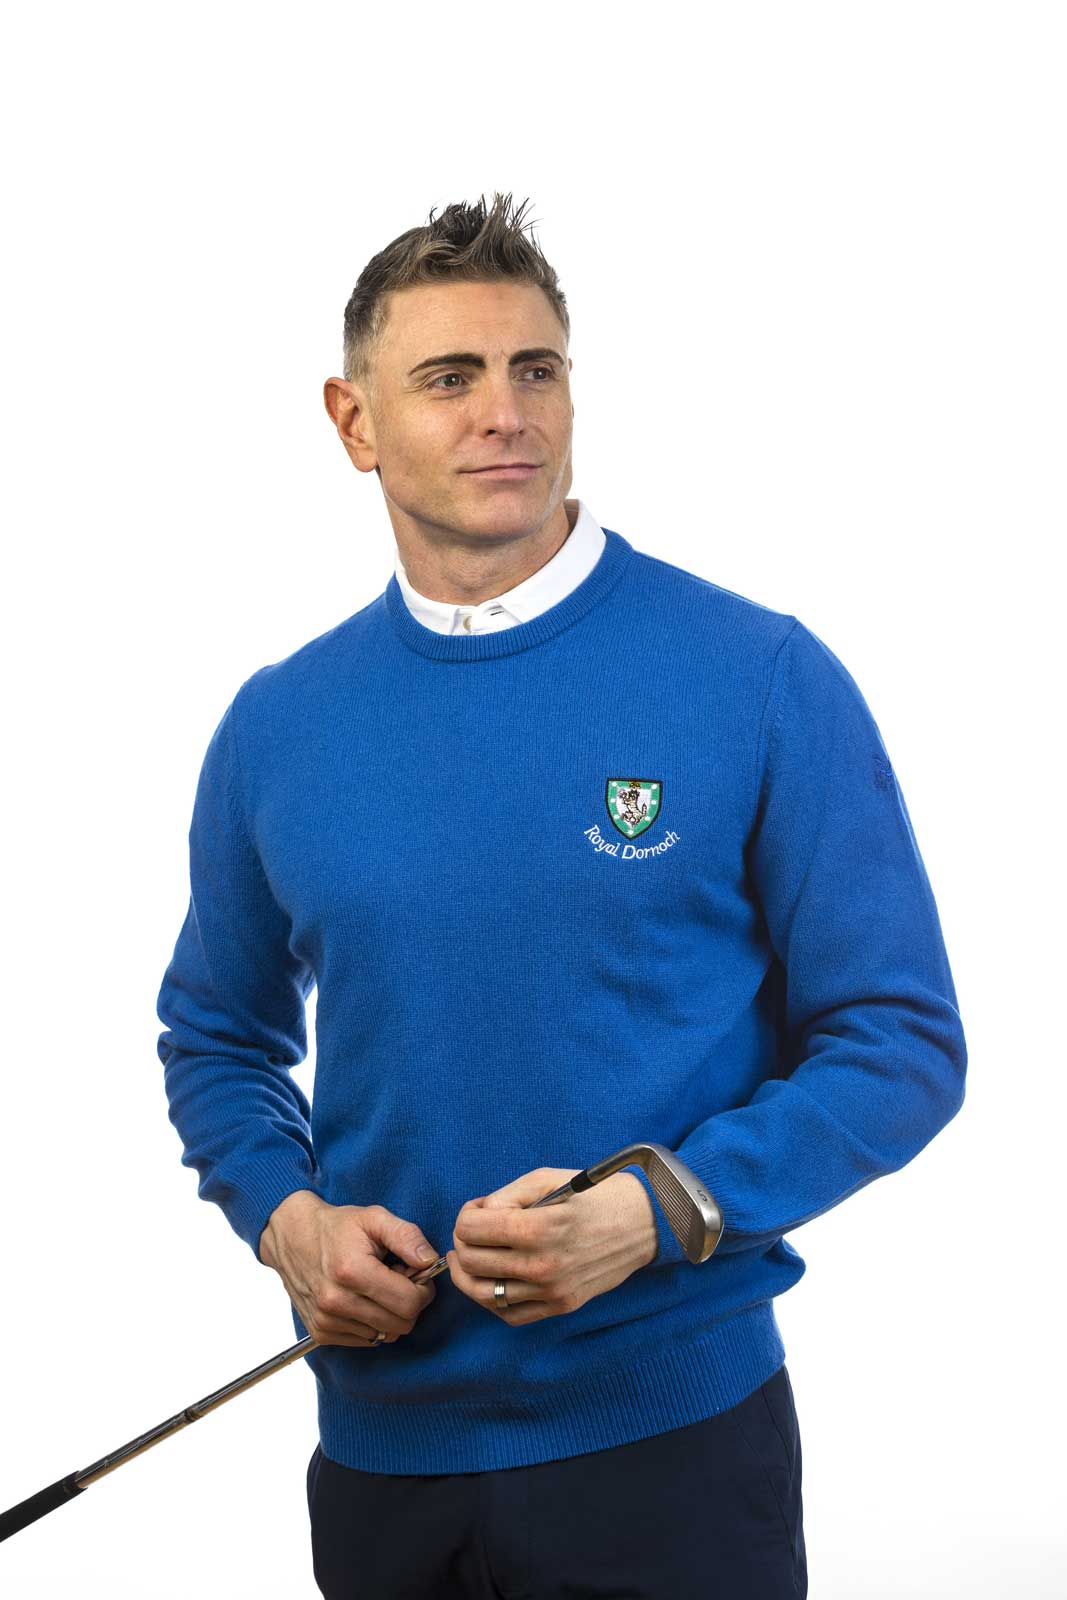 Lyle Amp Scott Classic Crew Neck Sweater Royal Dornoch Pro